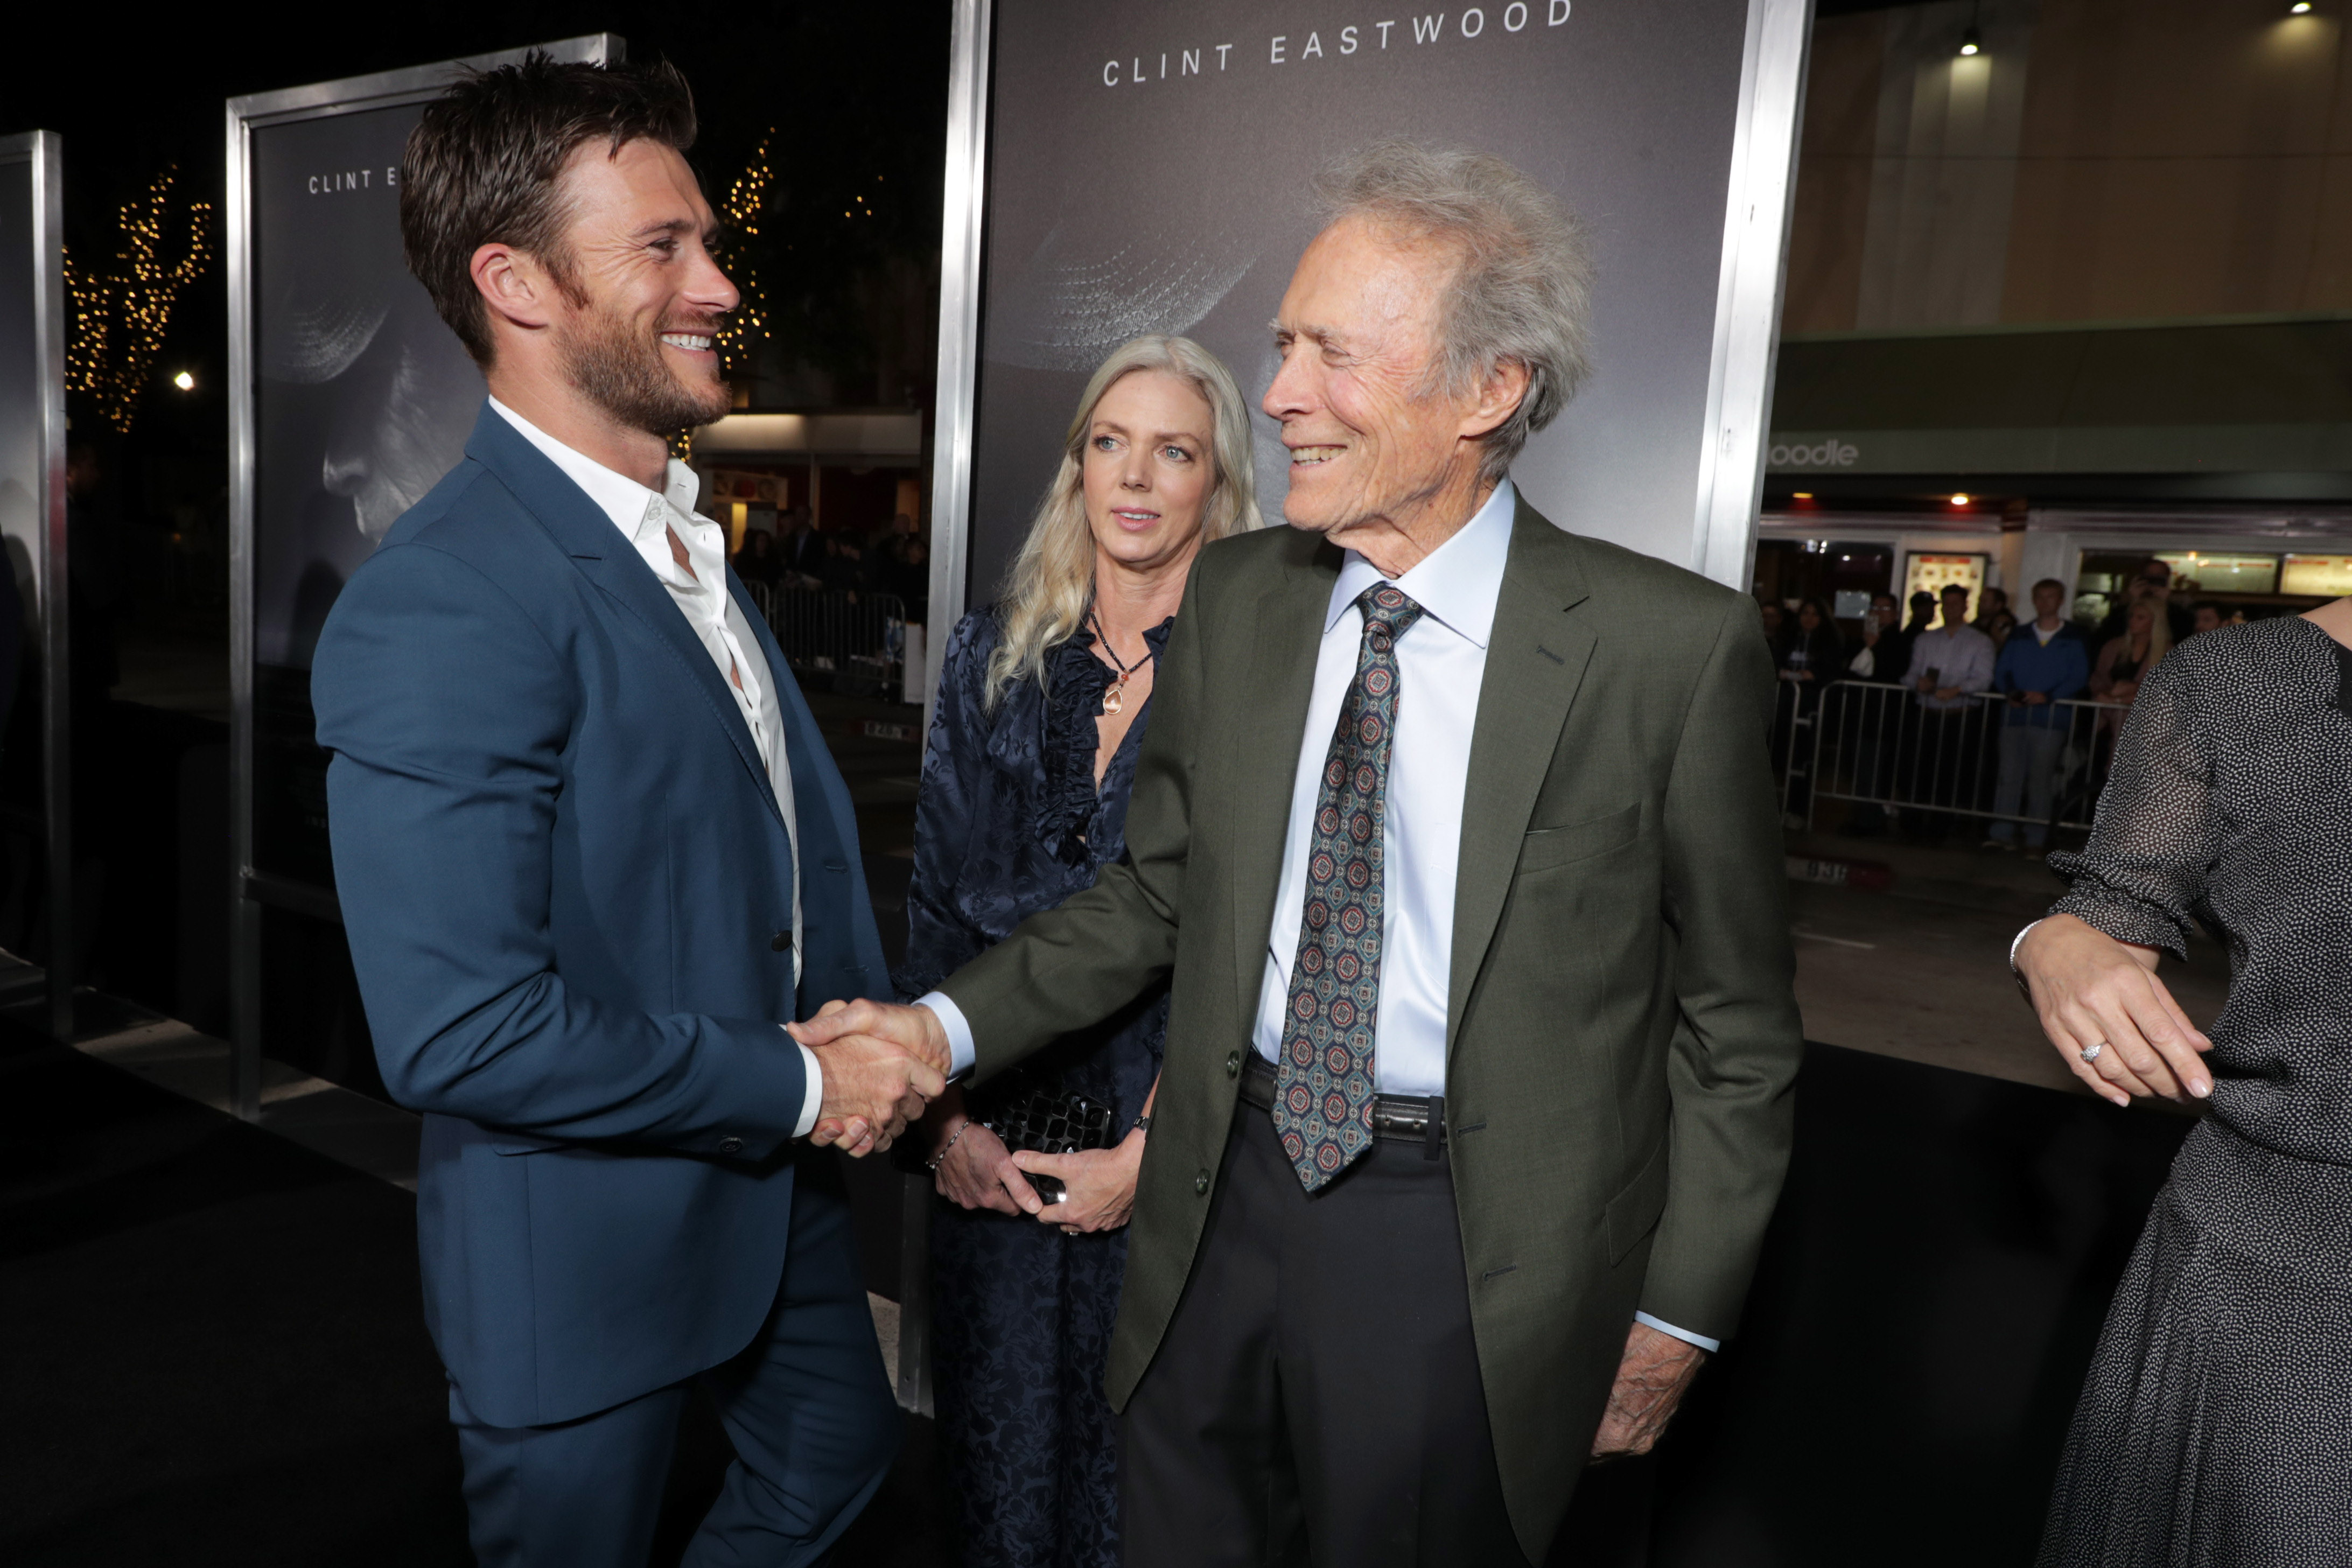 Scott Eastwood Reveals the Best Advice Dad Clint Eastwood Has Taught Him: 'Listen More'